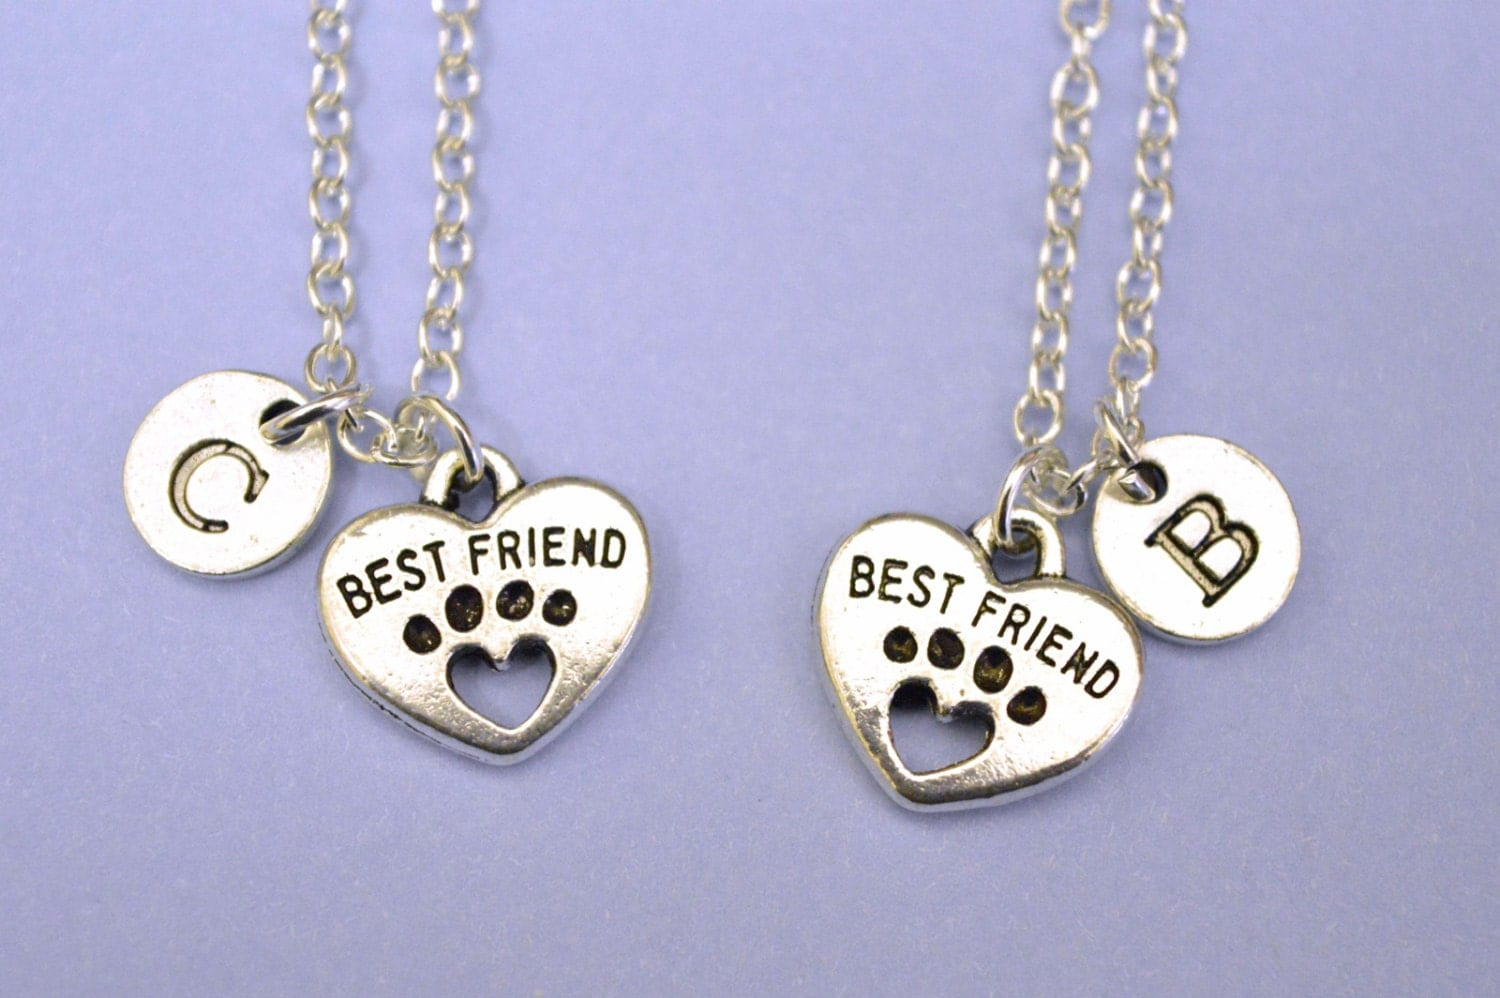 women best friends forever friendship two pieces silver tone pendant necklaces. Your recognition will make us more confident to develop business and serve you better. 2x Thelma & Louise Necklace Gold Partners in Crime Pistol Best Friend Friendship.